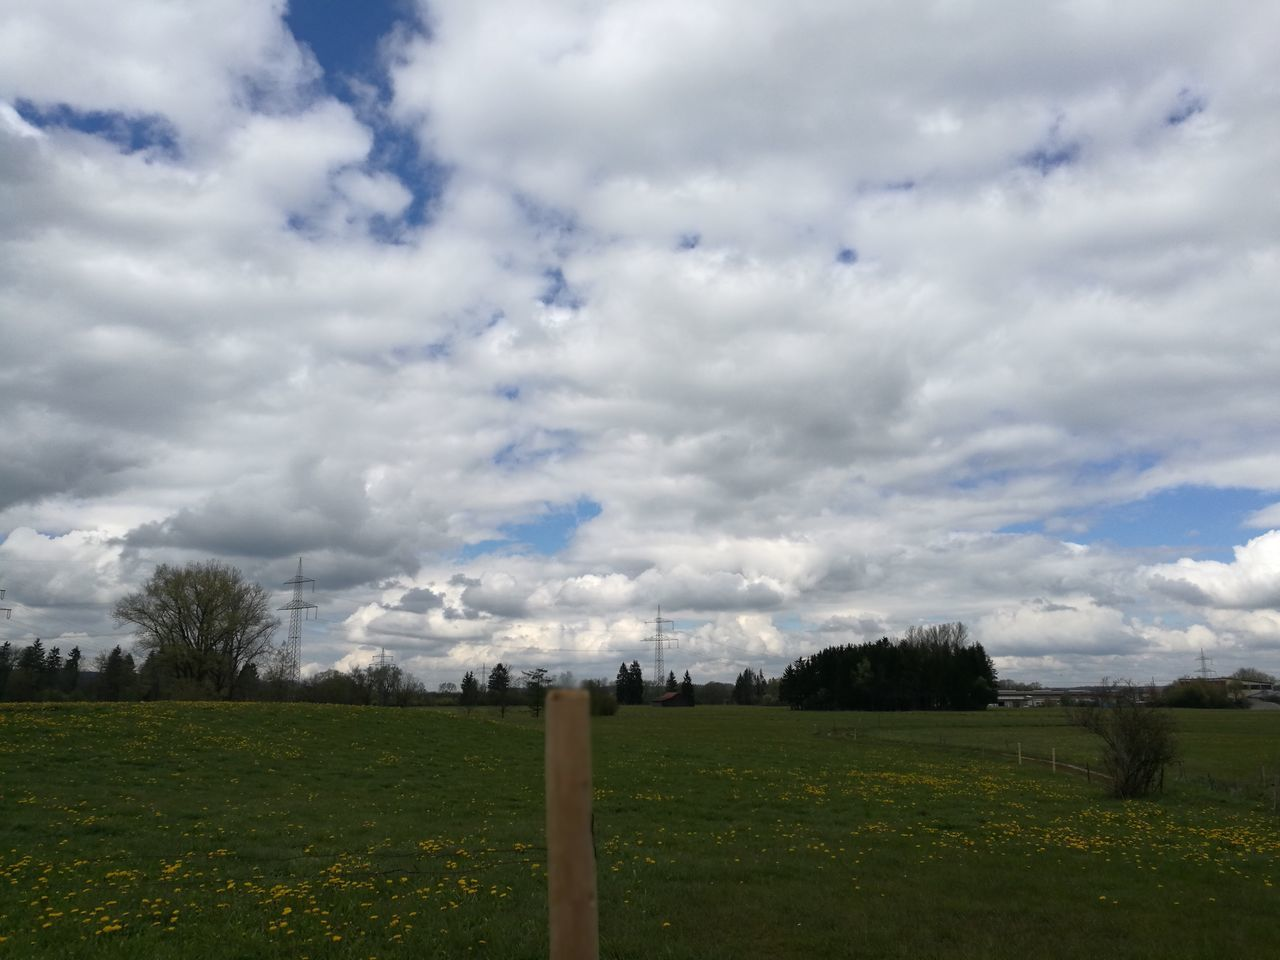 sky, cloud - sky, grass, field, day, no people, nature, tree, outdoors, landscape, tranquility, beauty in nature, scenics